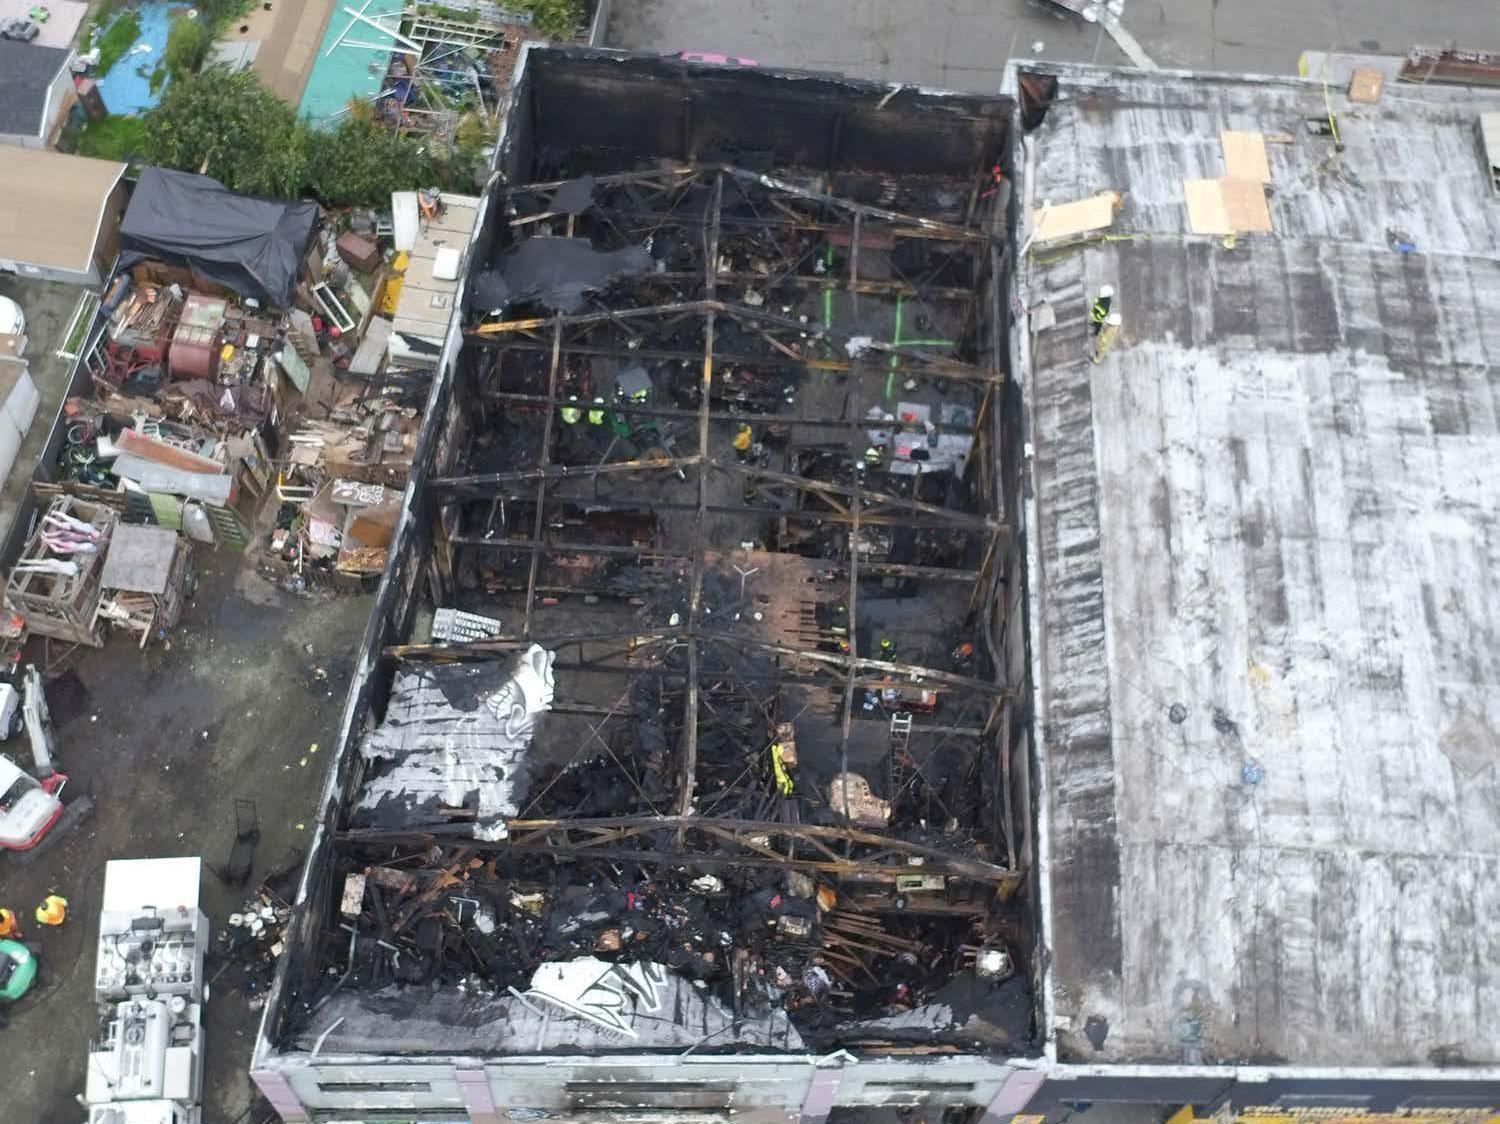 Ghost ship fire: No convictions over 36 deaths in Oakland warehouse